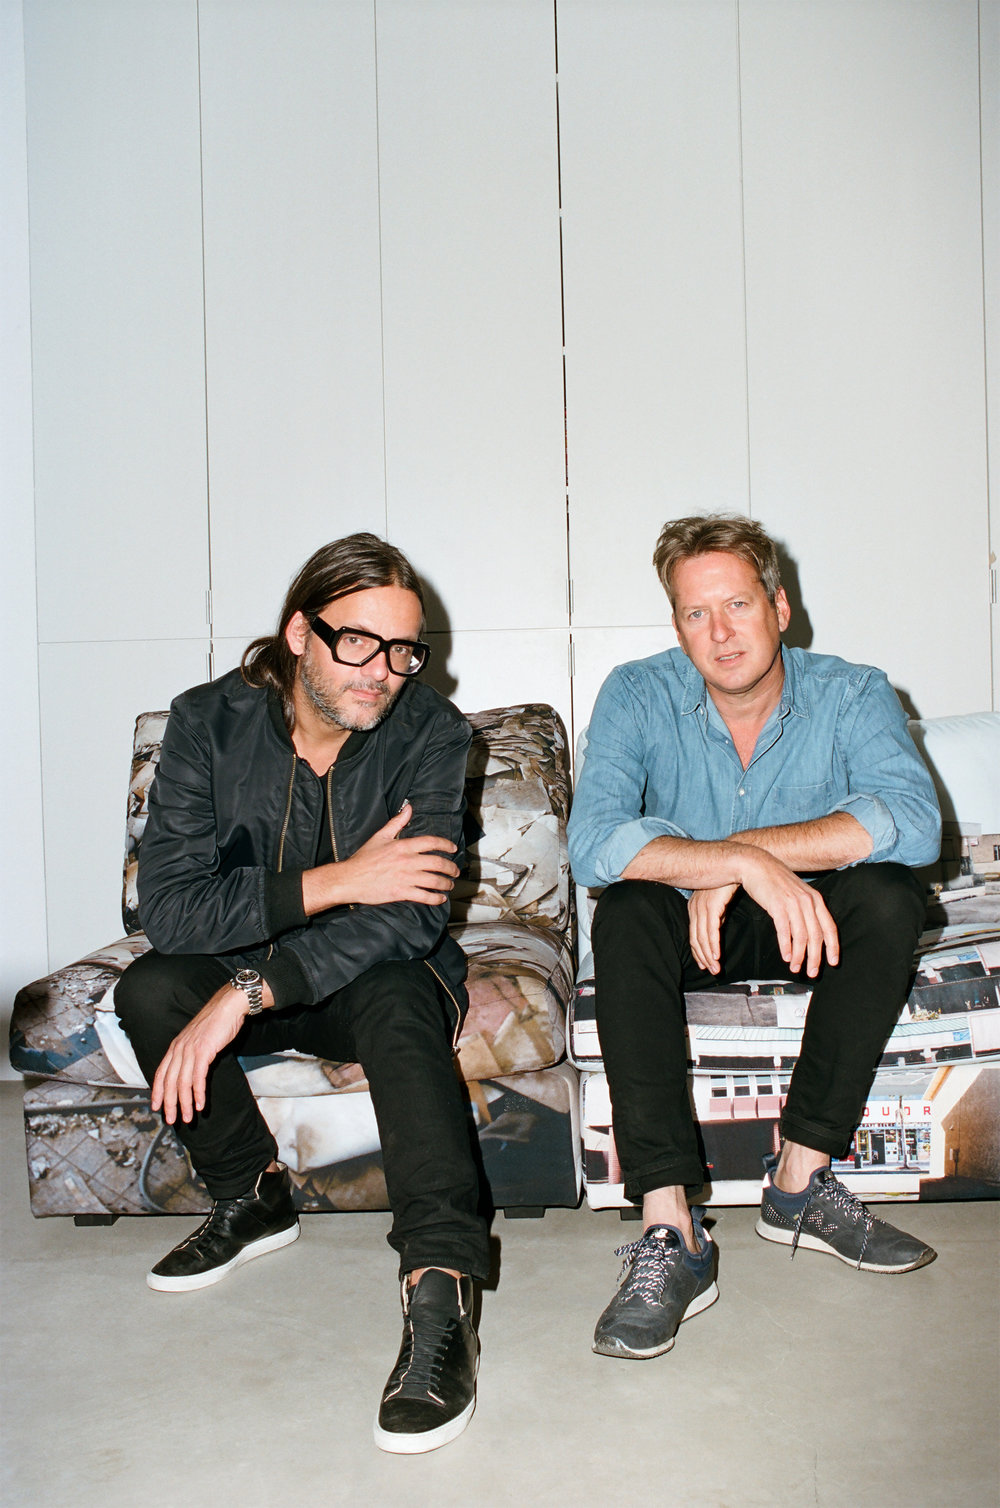 Doug Aitken & Cyrill Gutsch / Parley for the Oceans Project